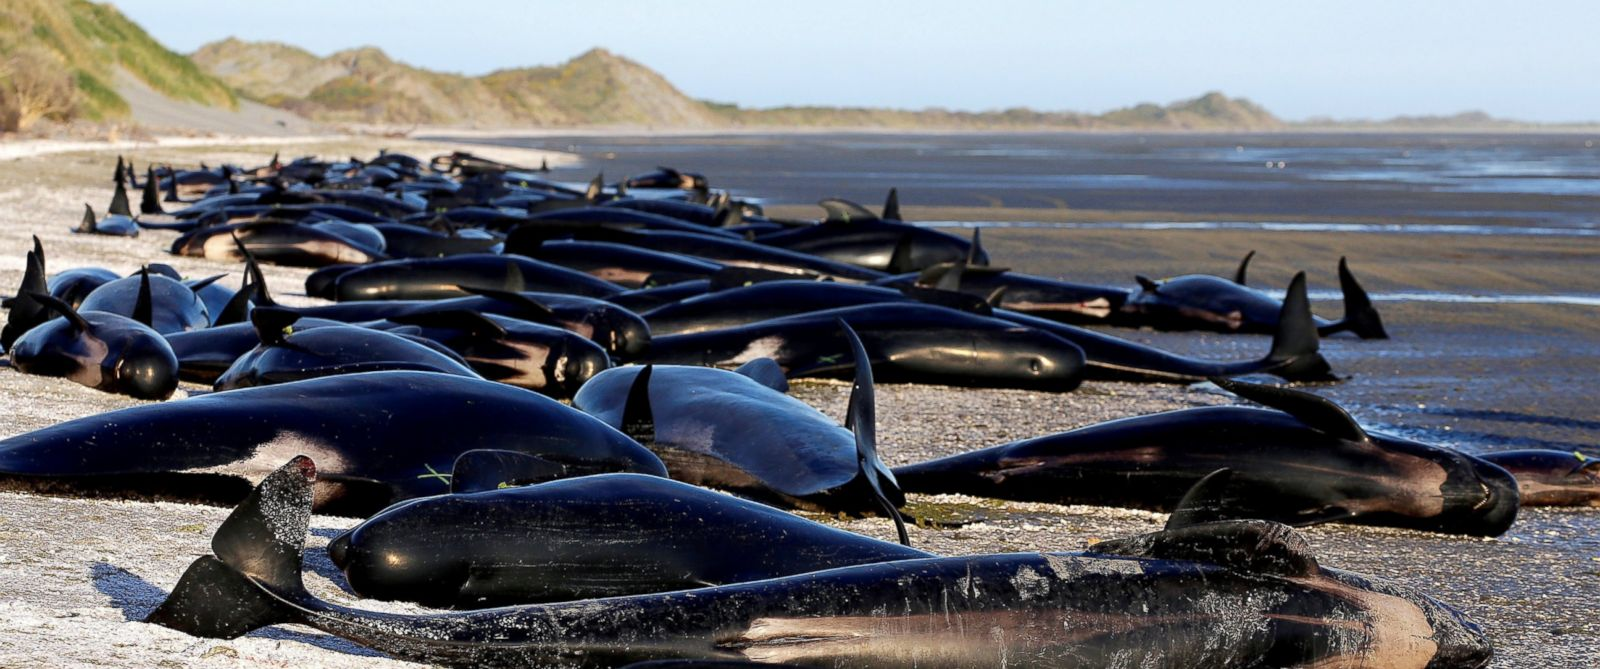 Largest Whale Sentinel Beaching In Human History Prompts Russian